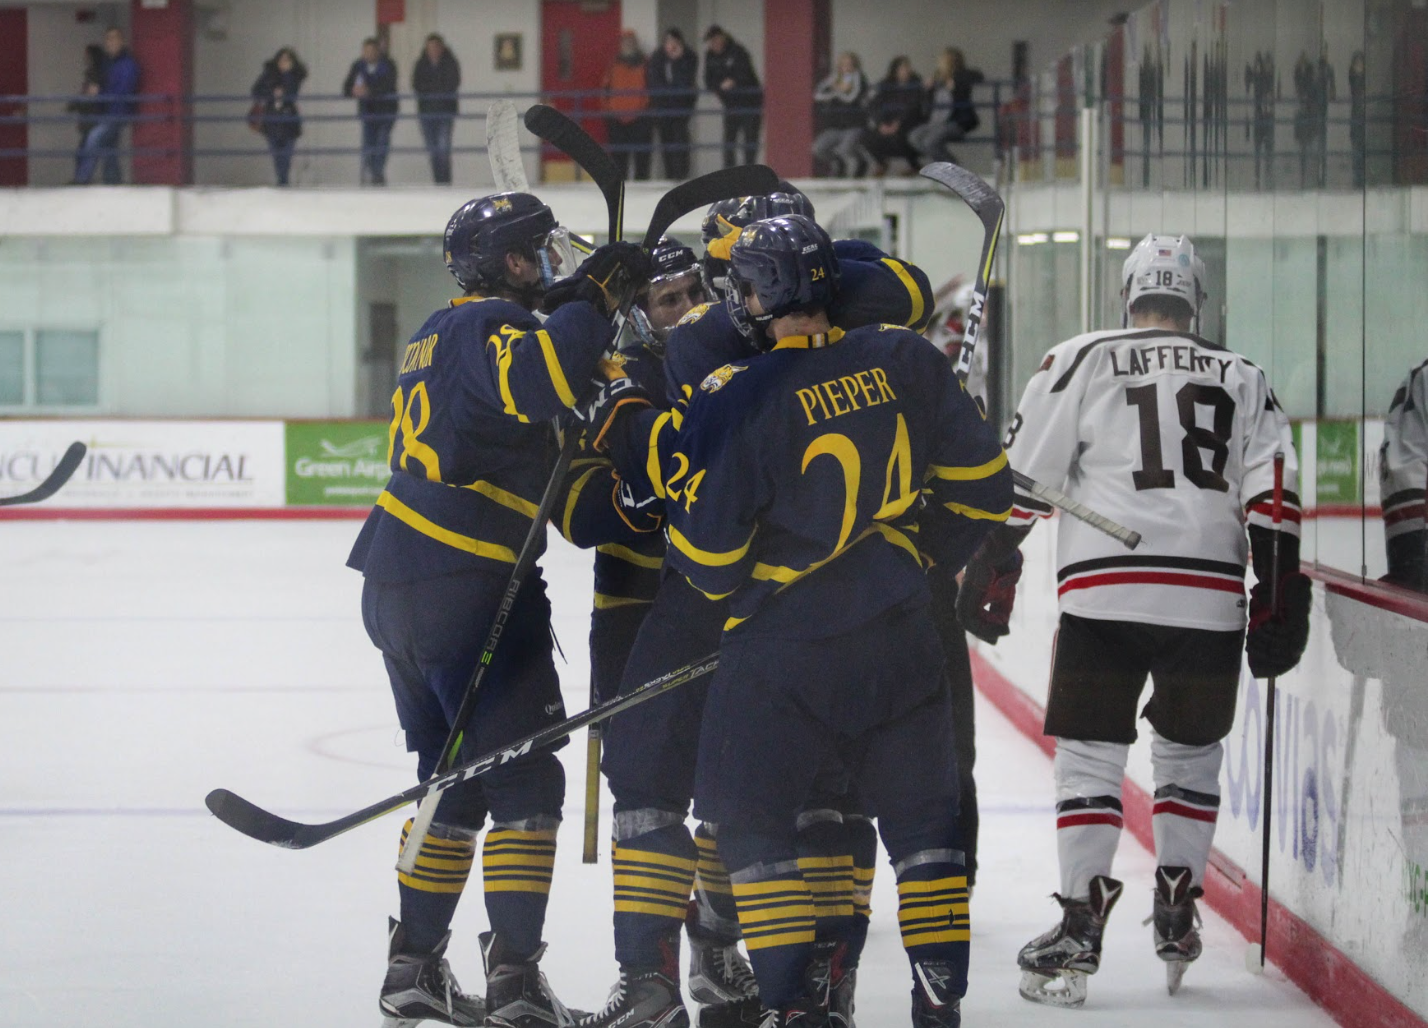 Quinnipiac men's ice hockey blanks Brown 3-0 in Providence